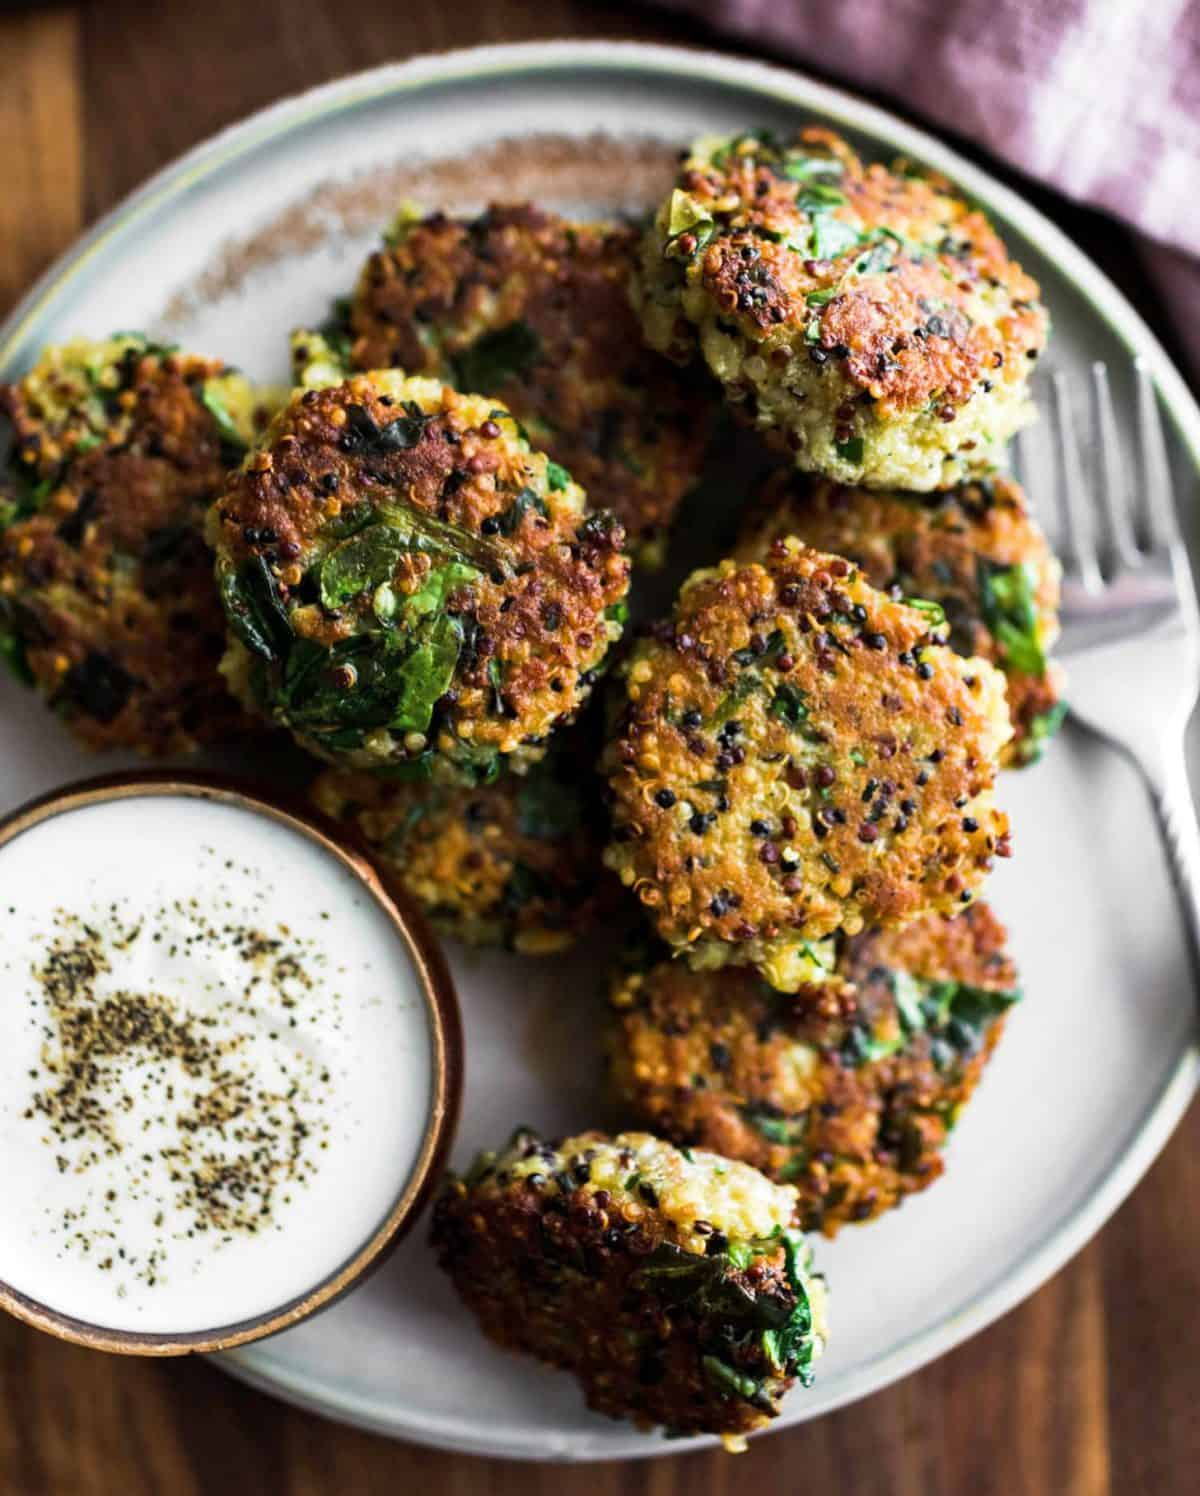 Spinach quinoa cakes.Deliciously healthy foods that kids can help make...and eat.